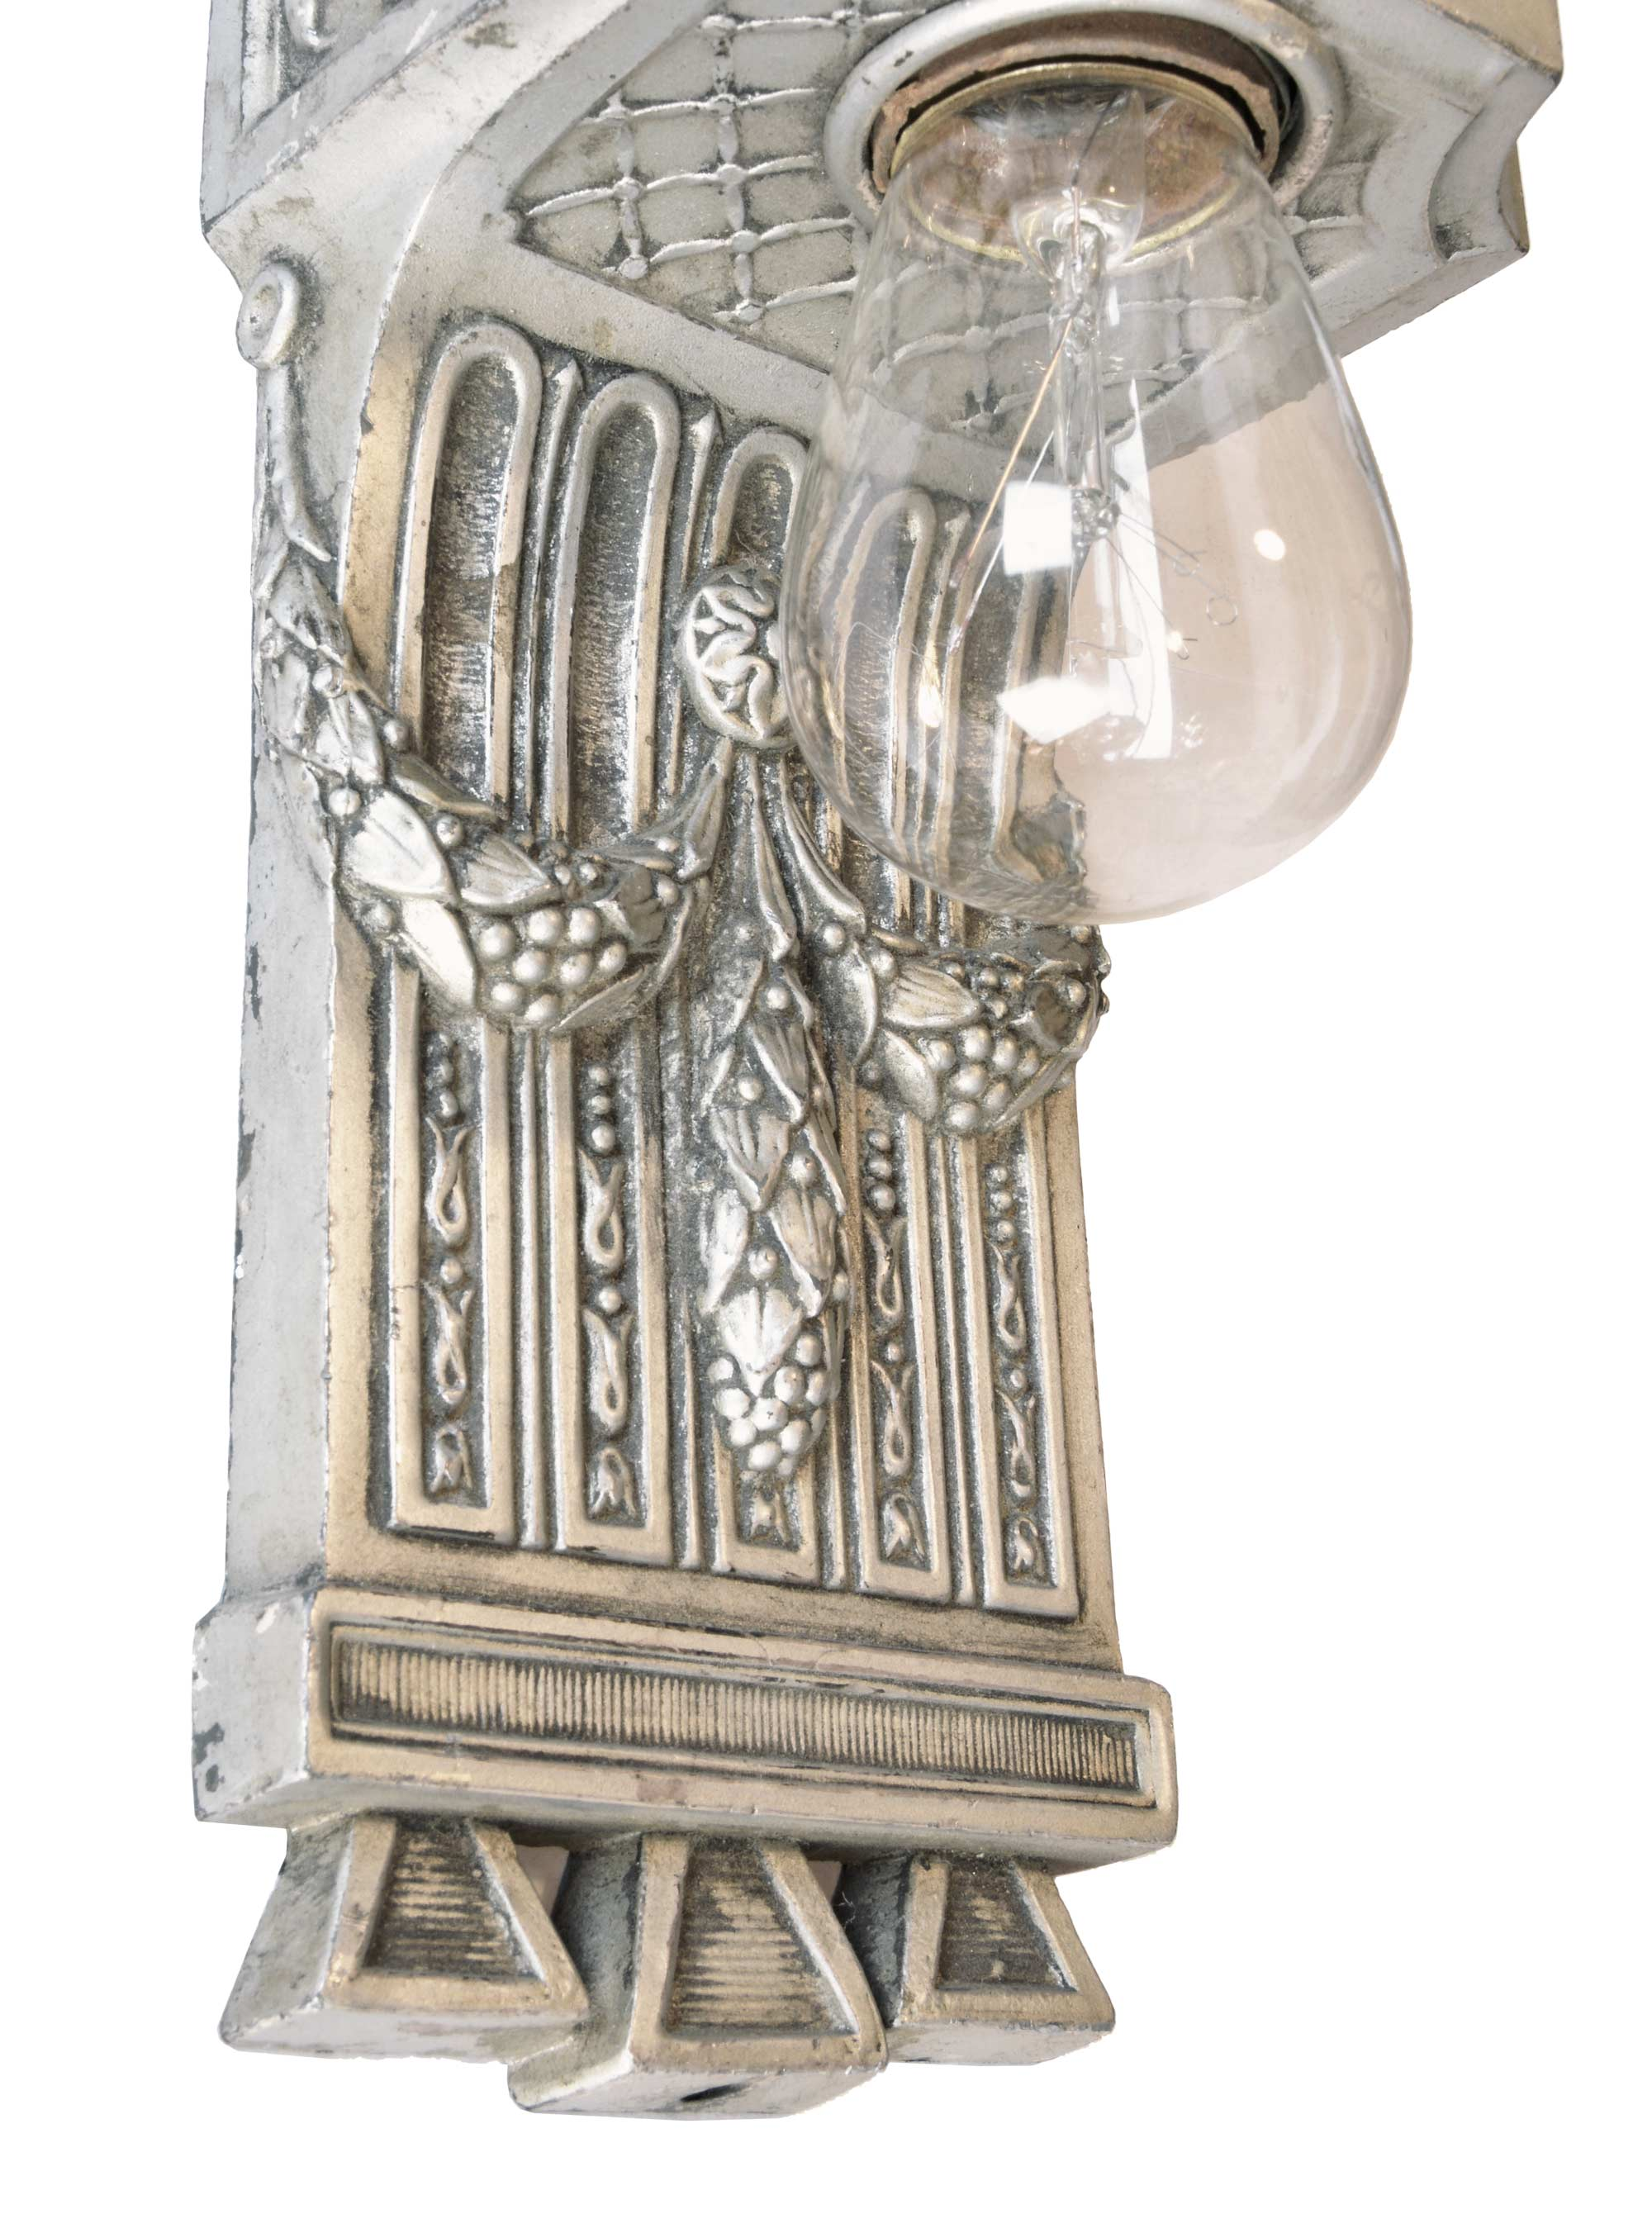 46603-neoclassical-sconce-backplate-detail.jpg